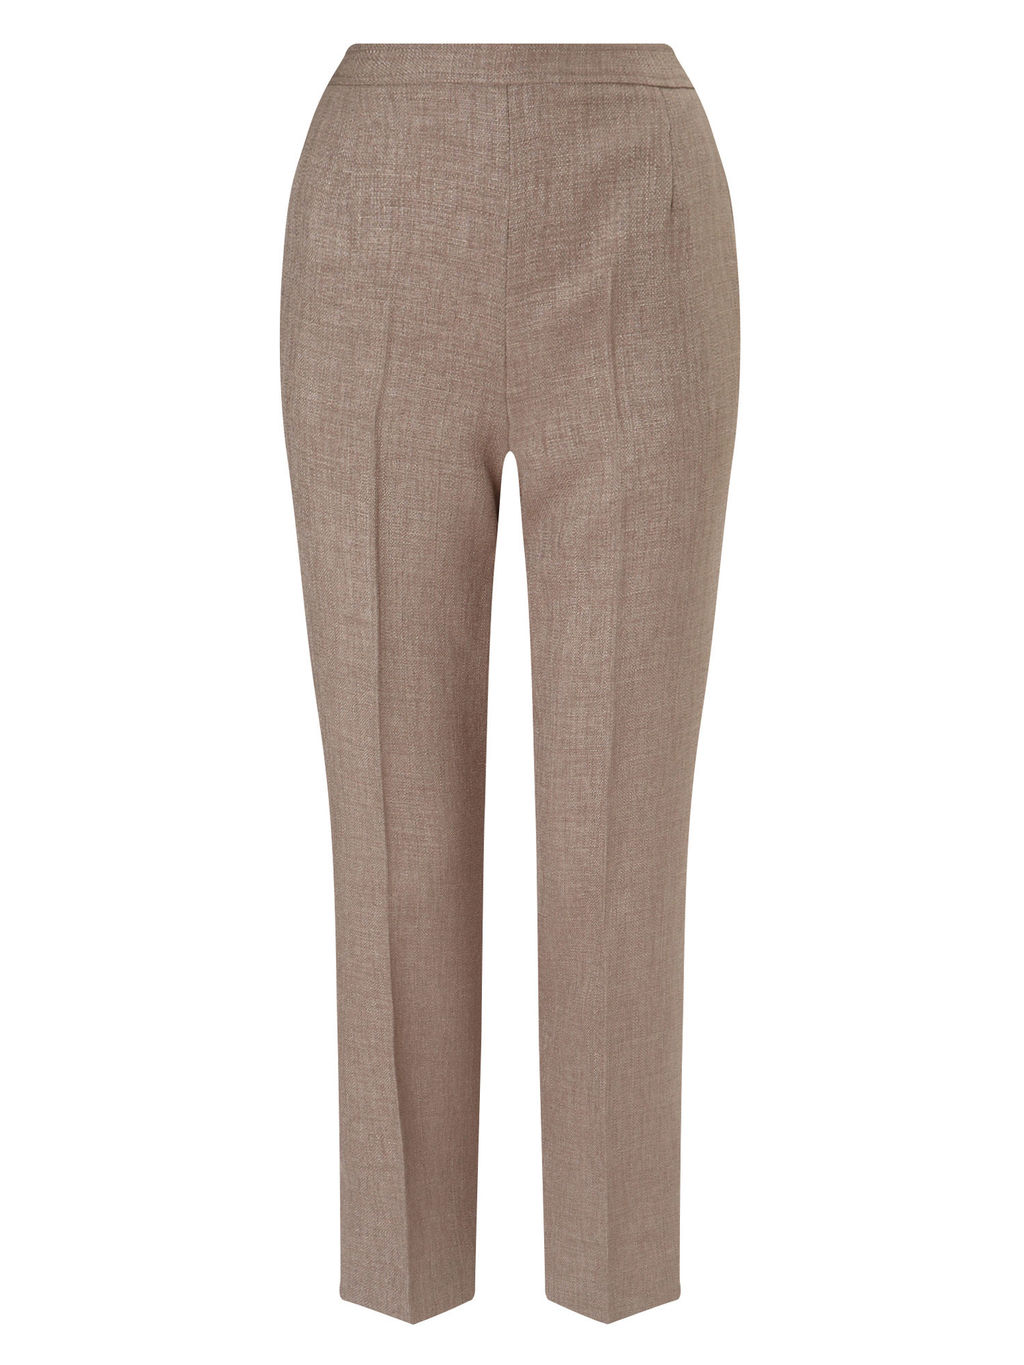 Basketweave Trouser - length: standard; pattern: plain; waist: high rise; predominant colour: stone; occasions: casual, creative work; fibres: polyester/polyamide - 100%; fit: straight leg; pattern type: fabric; texture group: woven light midweight; style: standard; season: s/s 2016; wardrobe: basic